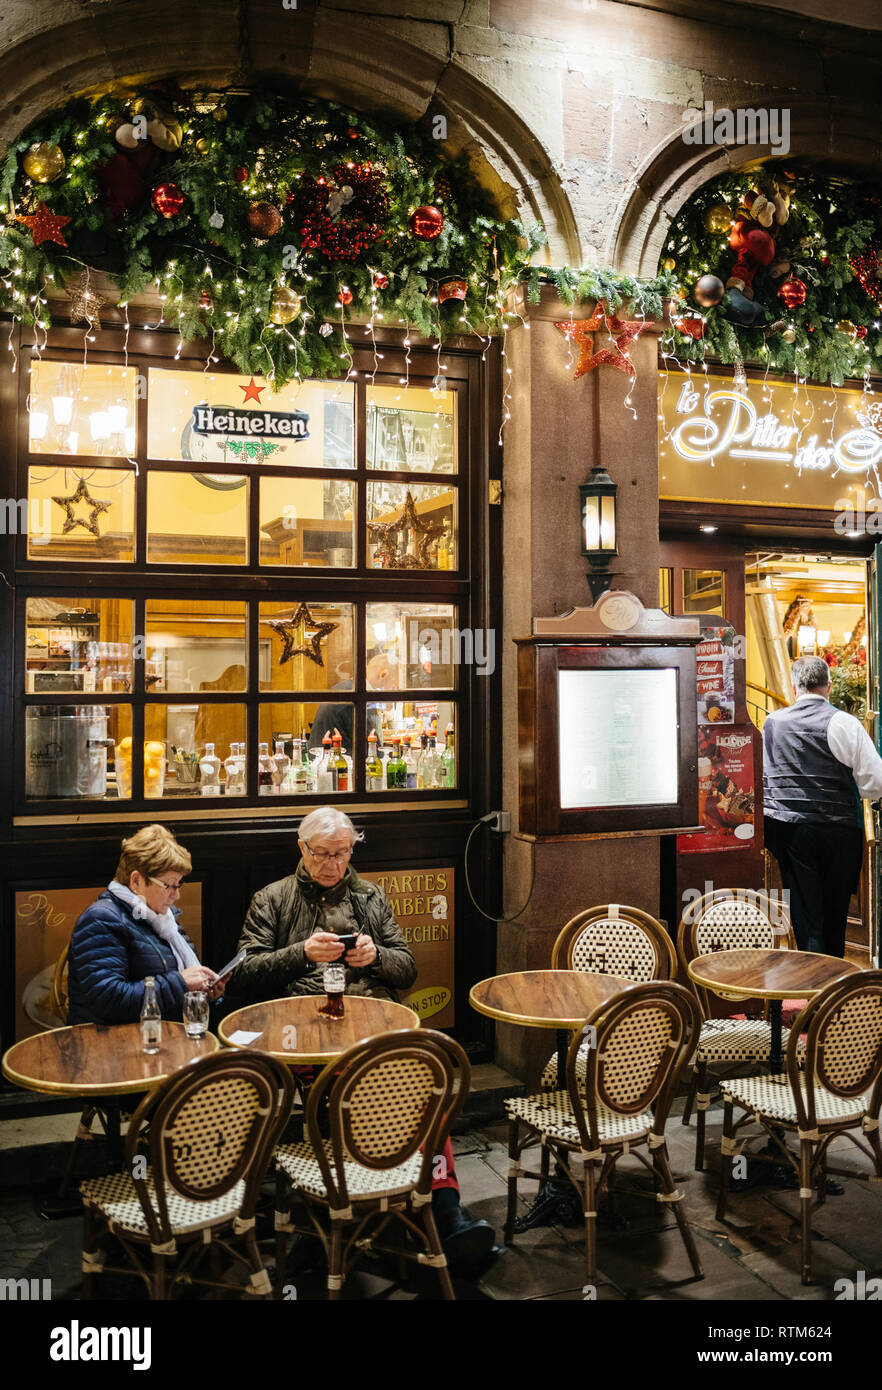 STRASBOURG, FRANCE - NOV 21, 2017: Le Pilier des Anges French restaurant on the iconic Rue Merciere with senior couple eating at the outdoor cafe paying the bill to the waiter - Stock Image